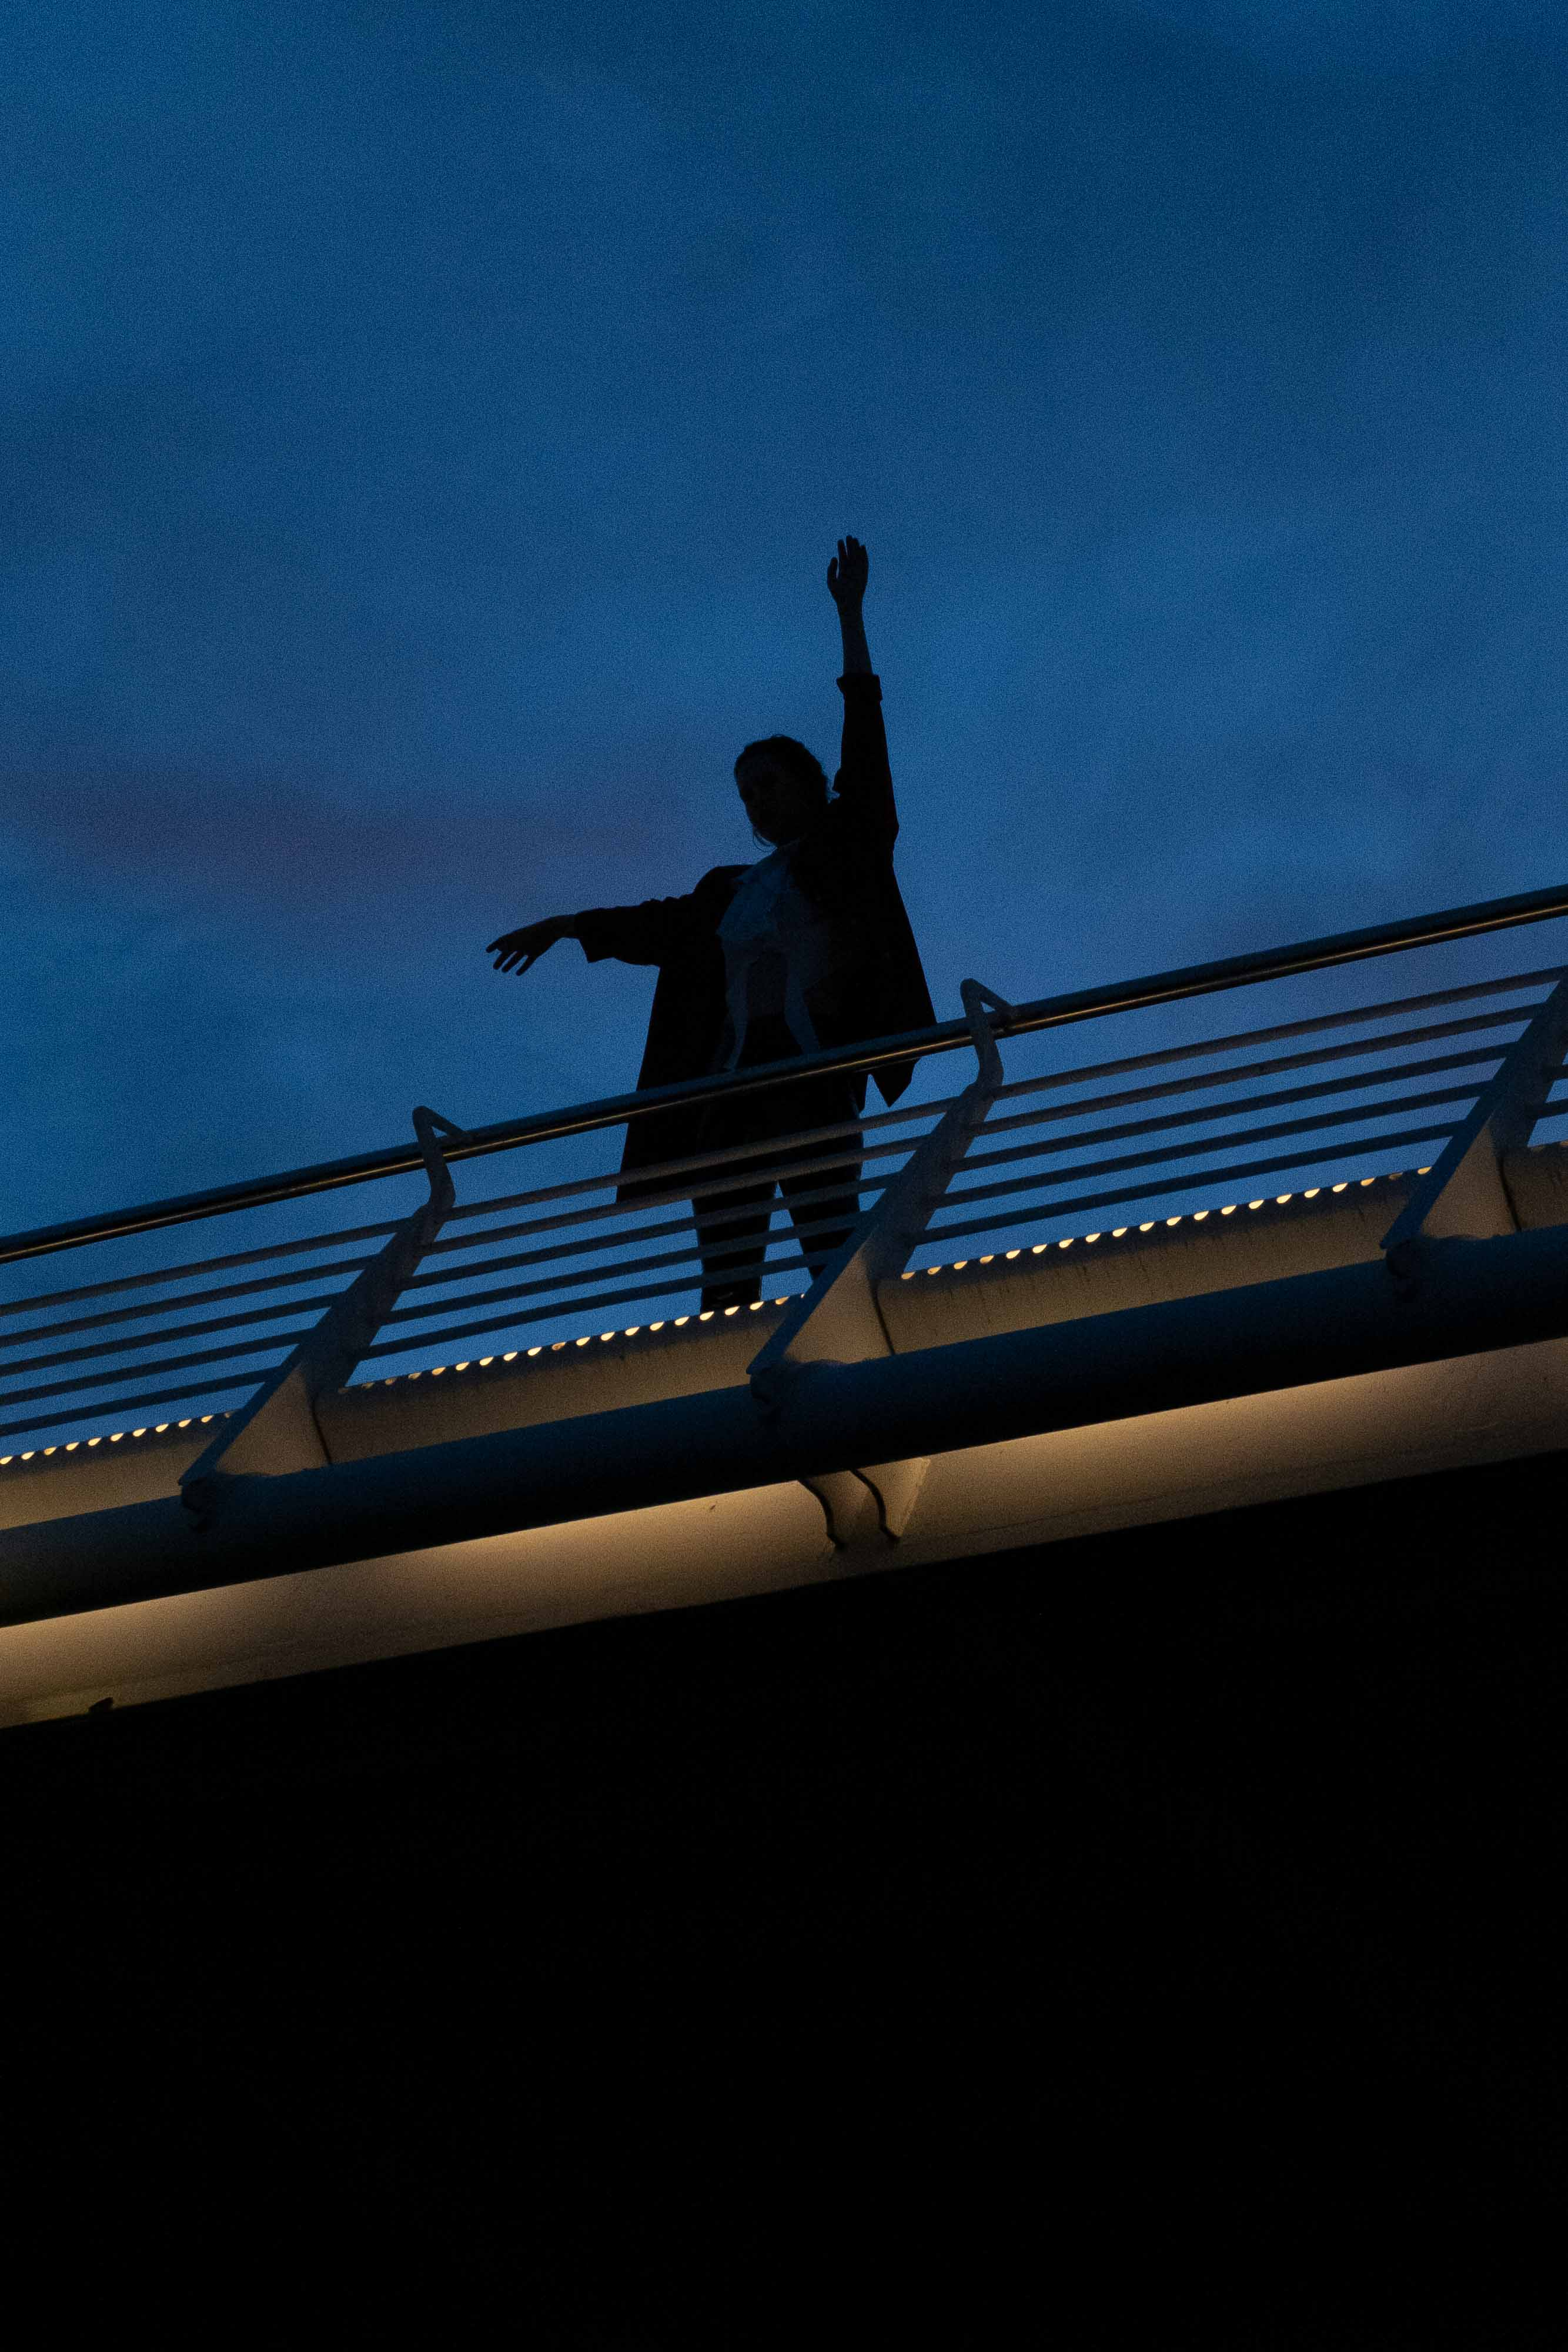 Artistic image of bridge and woman.